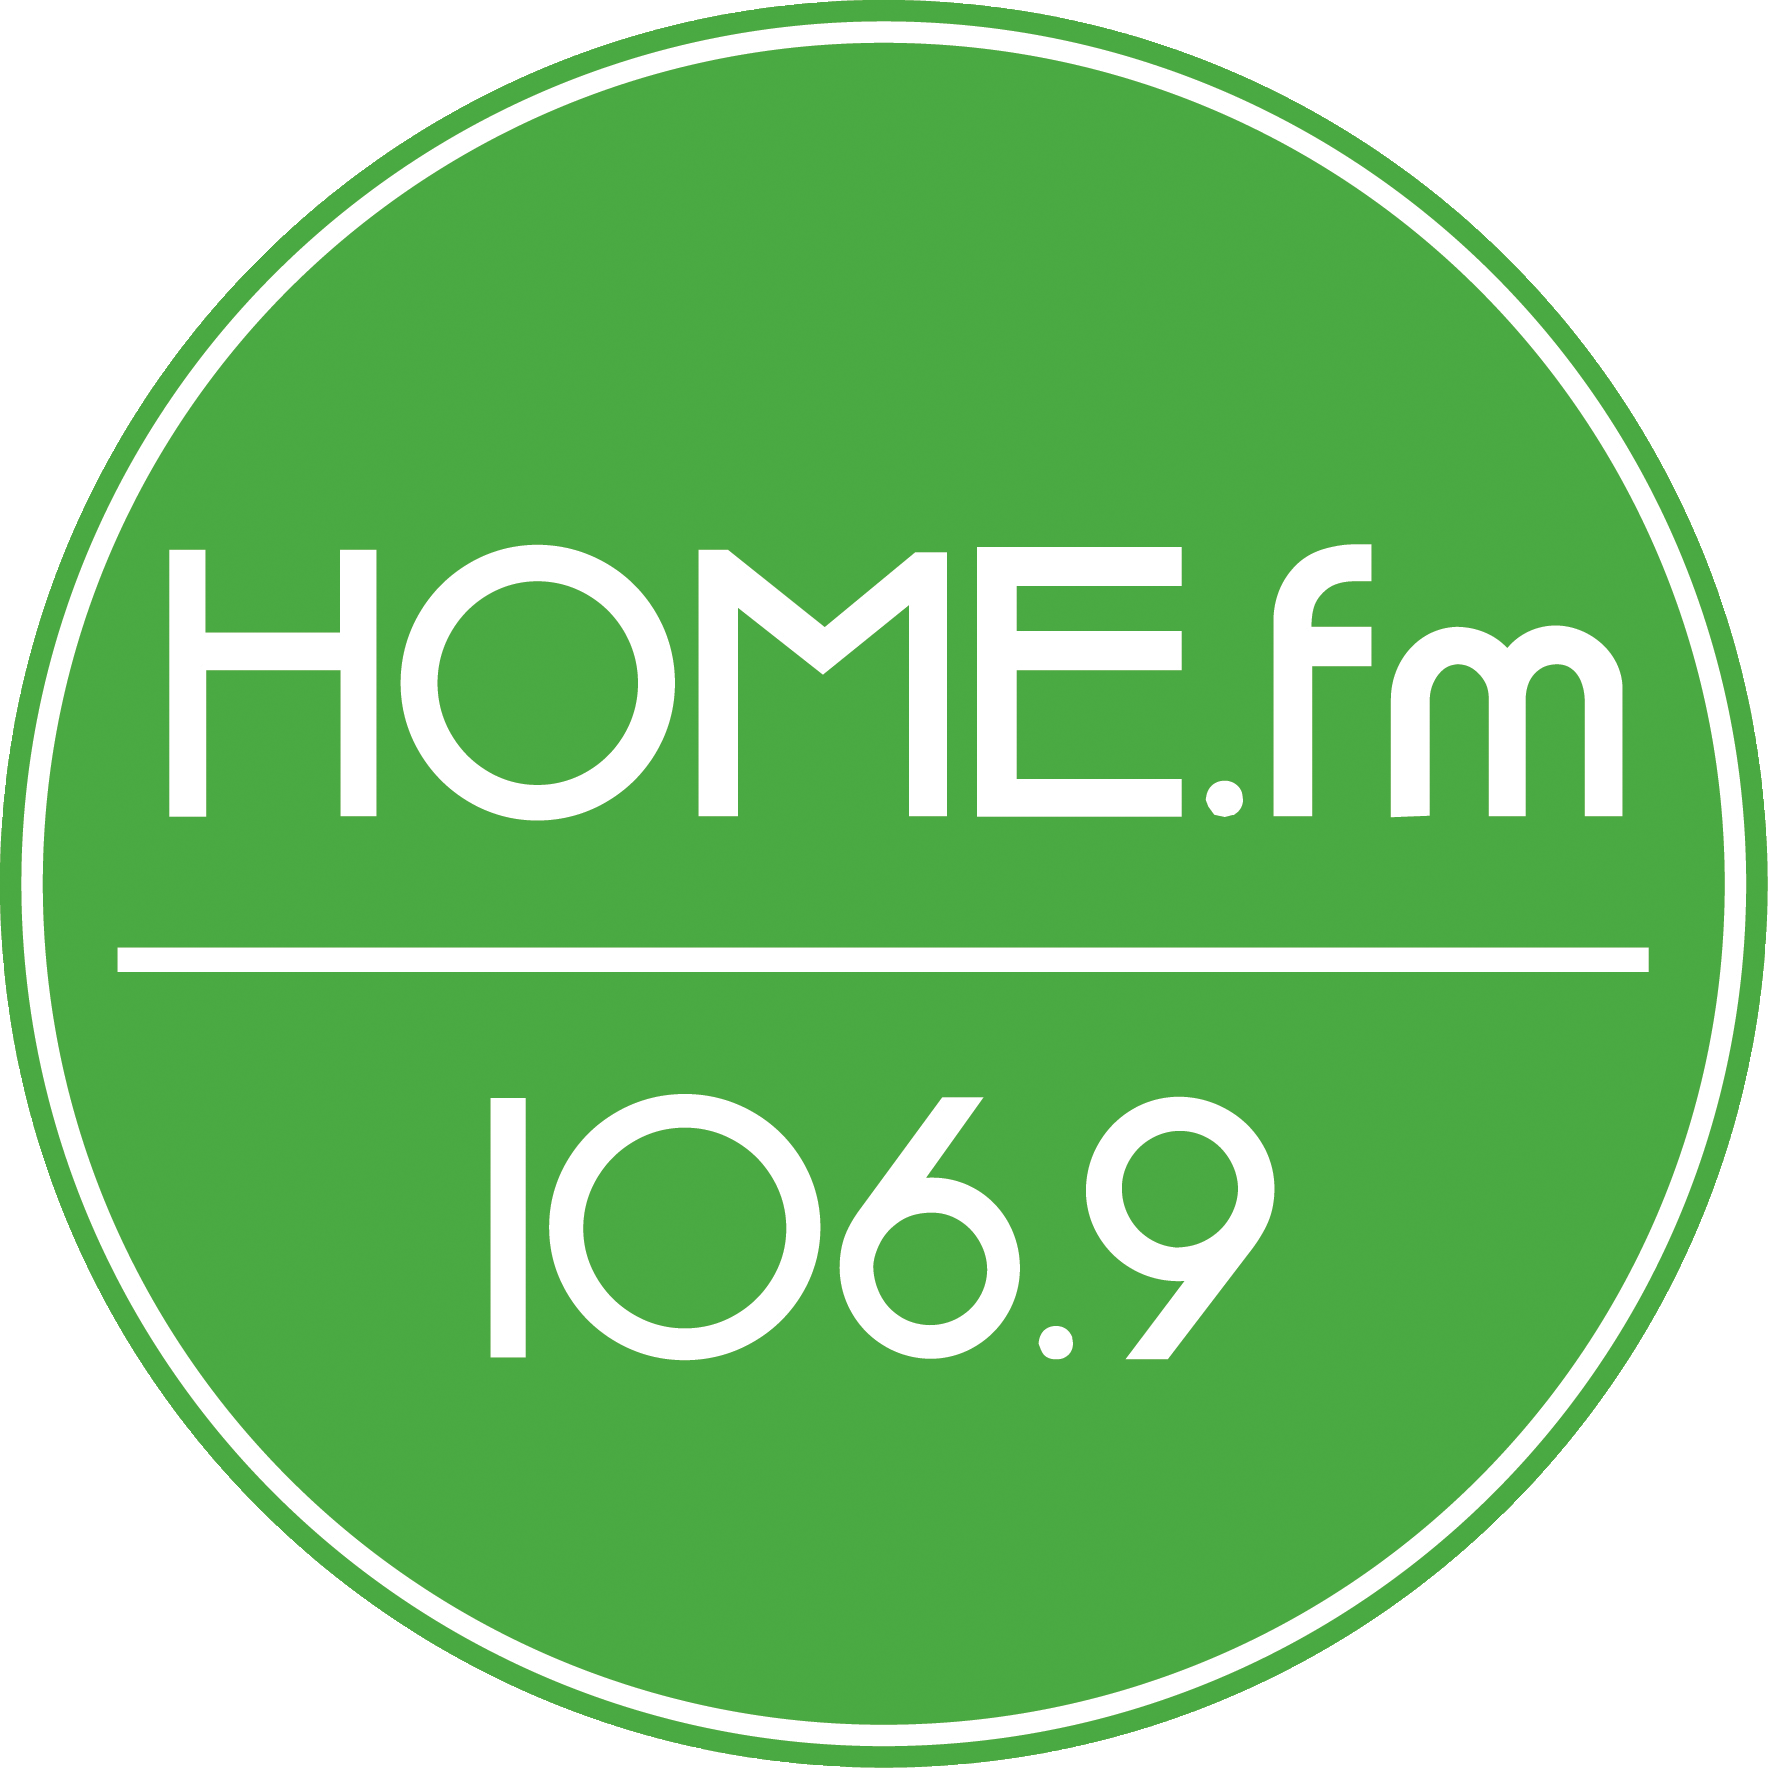 Performance made possible in part by Media Sponsor HOME.fm